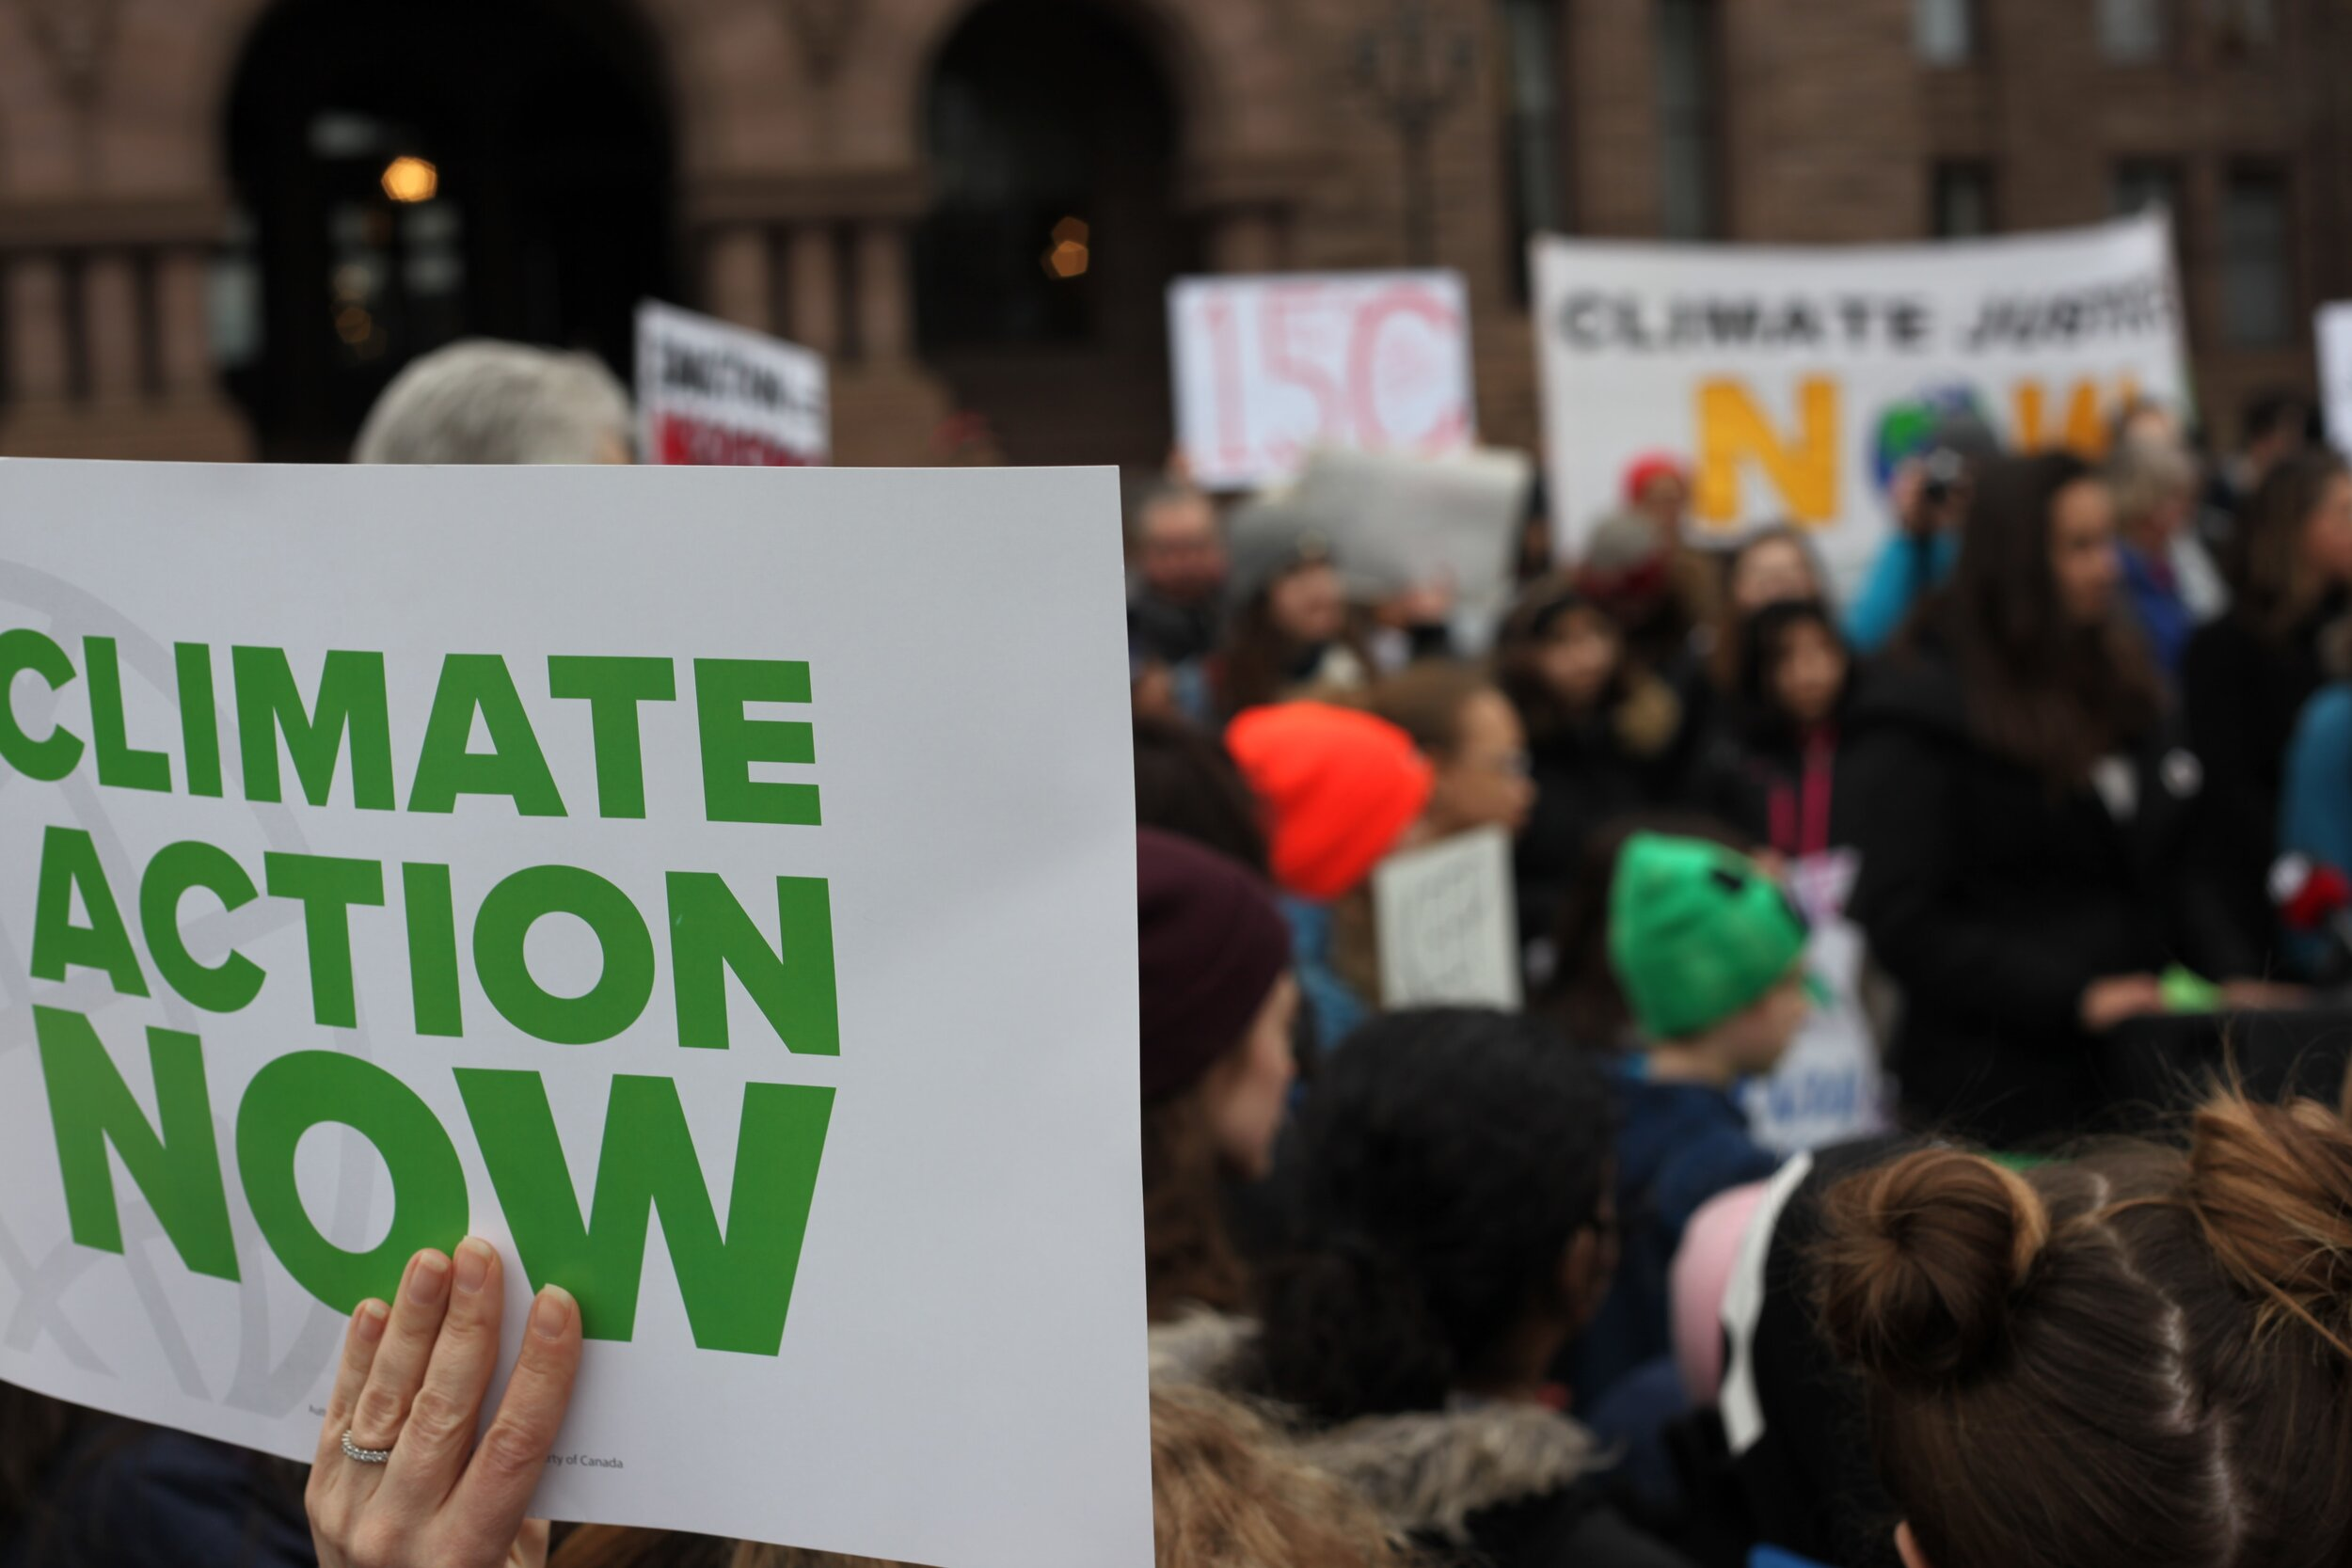 Many people have this year gone to the streets to call for greater climate action from governments around the world, including in Toronto, Canada (photographed). Image credit: Jasmin Sessler / Unsplash.